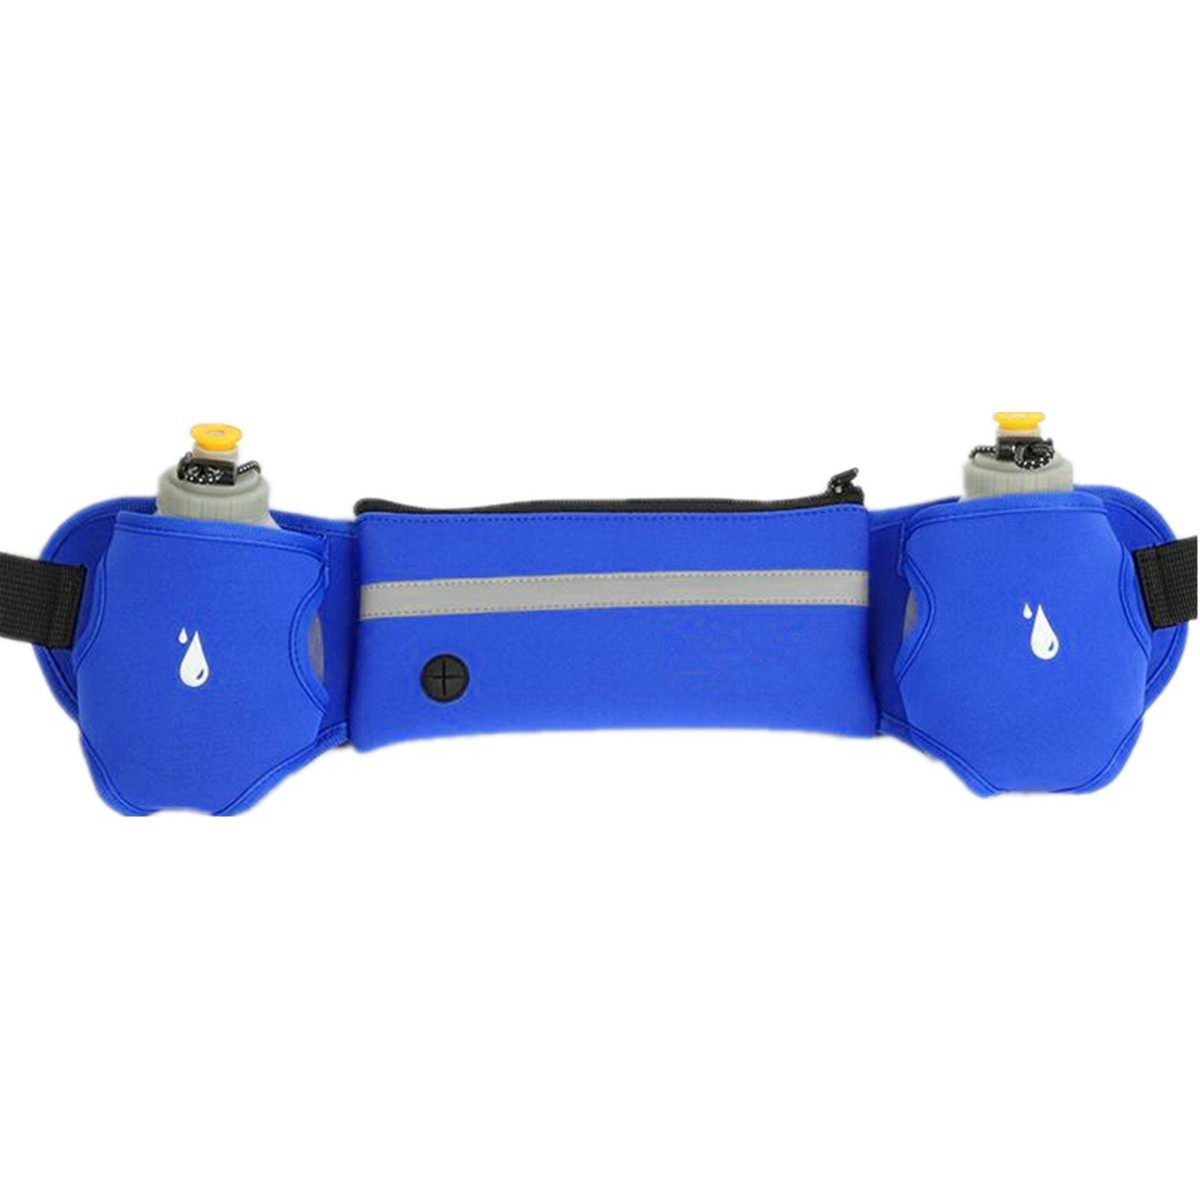 Unisex Sport Fitness Water Bottle Waist Belt Bag Running Jogging Marathon Gym Waist Accessories